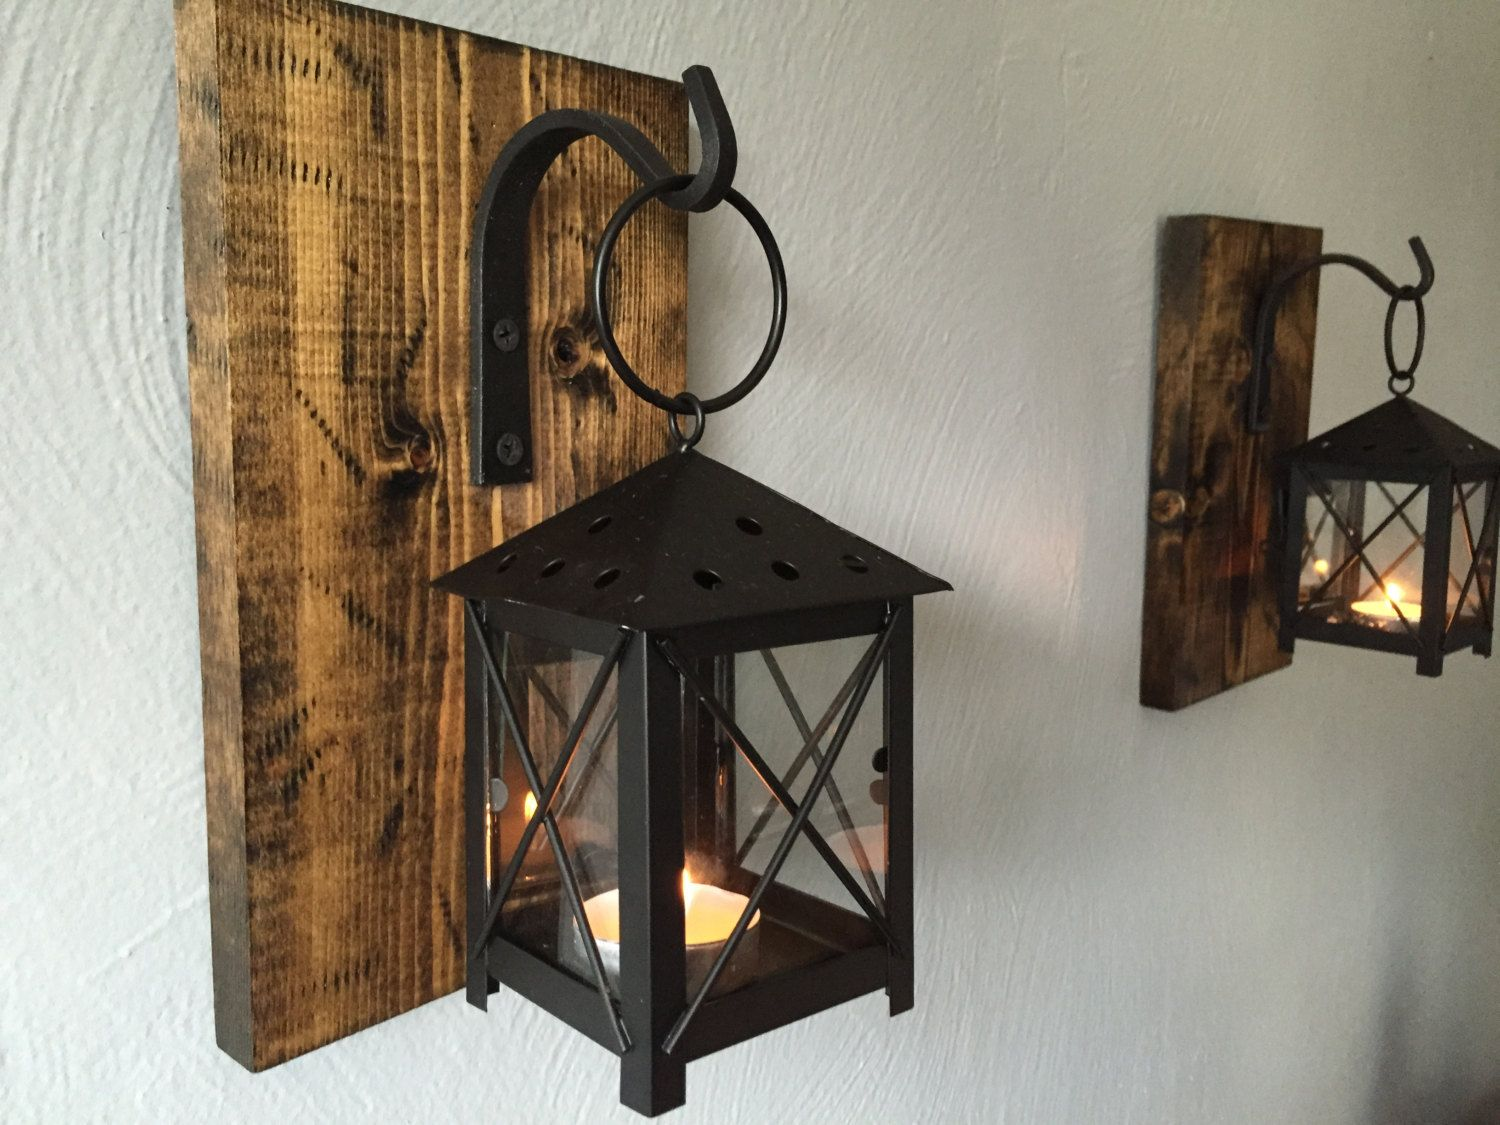 Rustic candle wall sconces popular beautiful chandeliers wall rustic candle wall sconces popular beautiful chandeliers amipublicfo Images